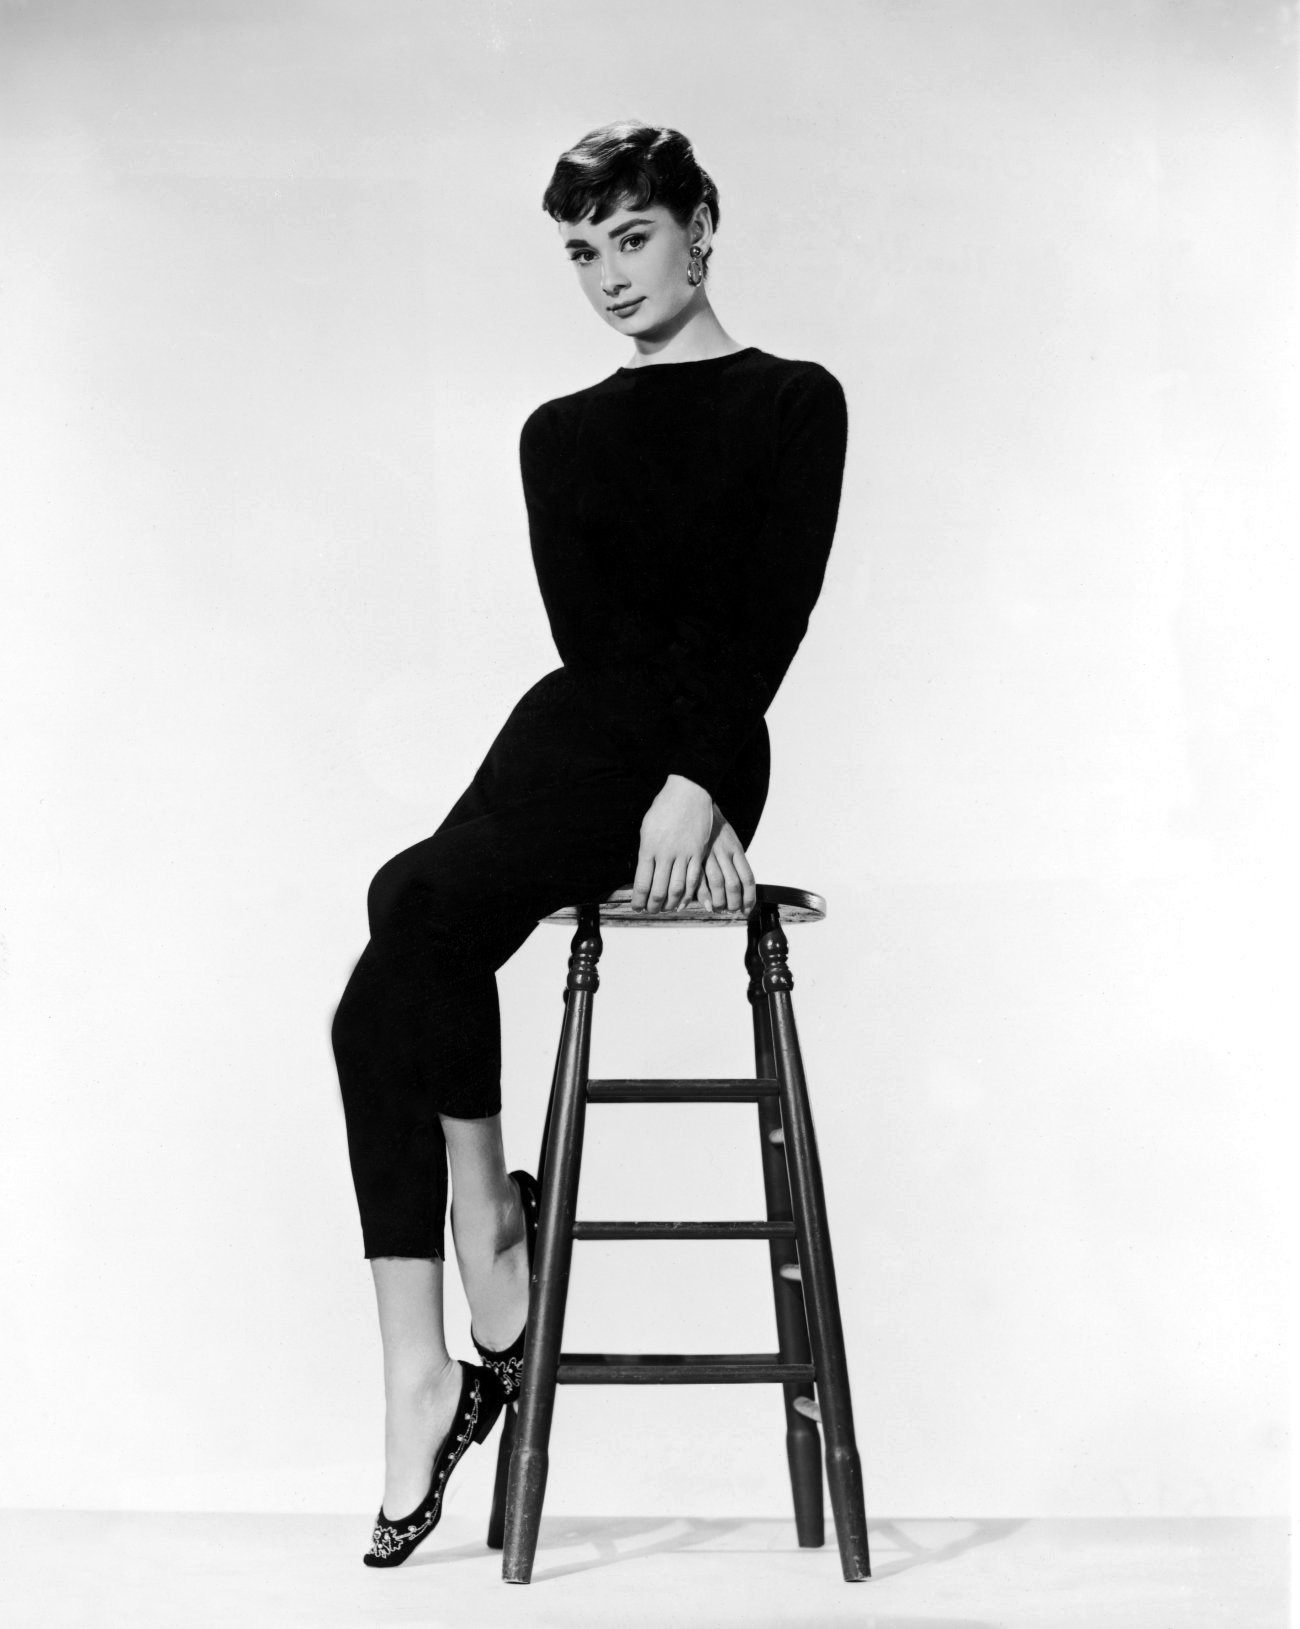 audrey hepburn love live life by kim. Black Bedroom Furniture Sets. Home Design Ideas